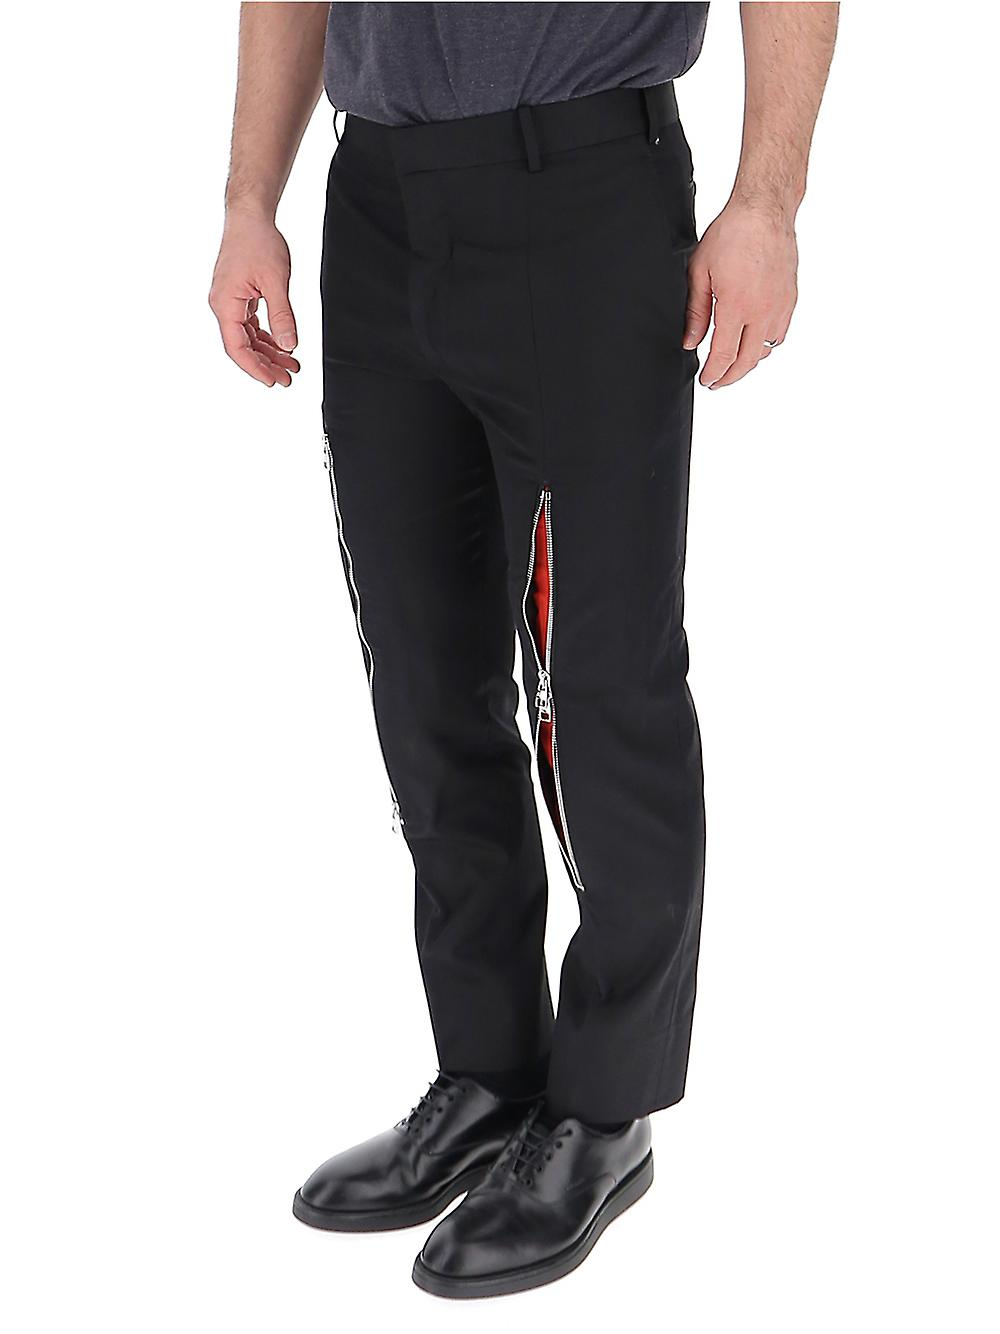 Alexander Mcqueen Black Cotton Pants